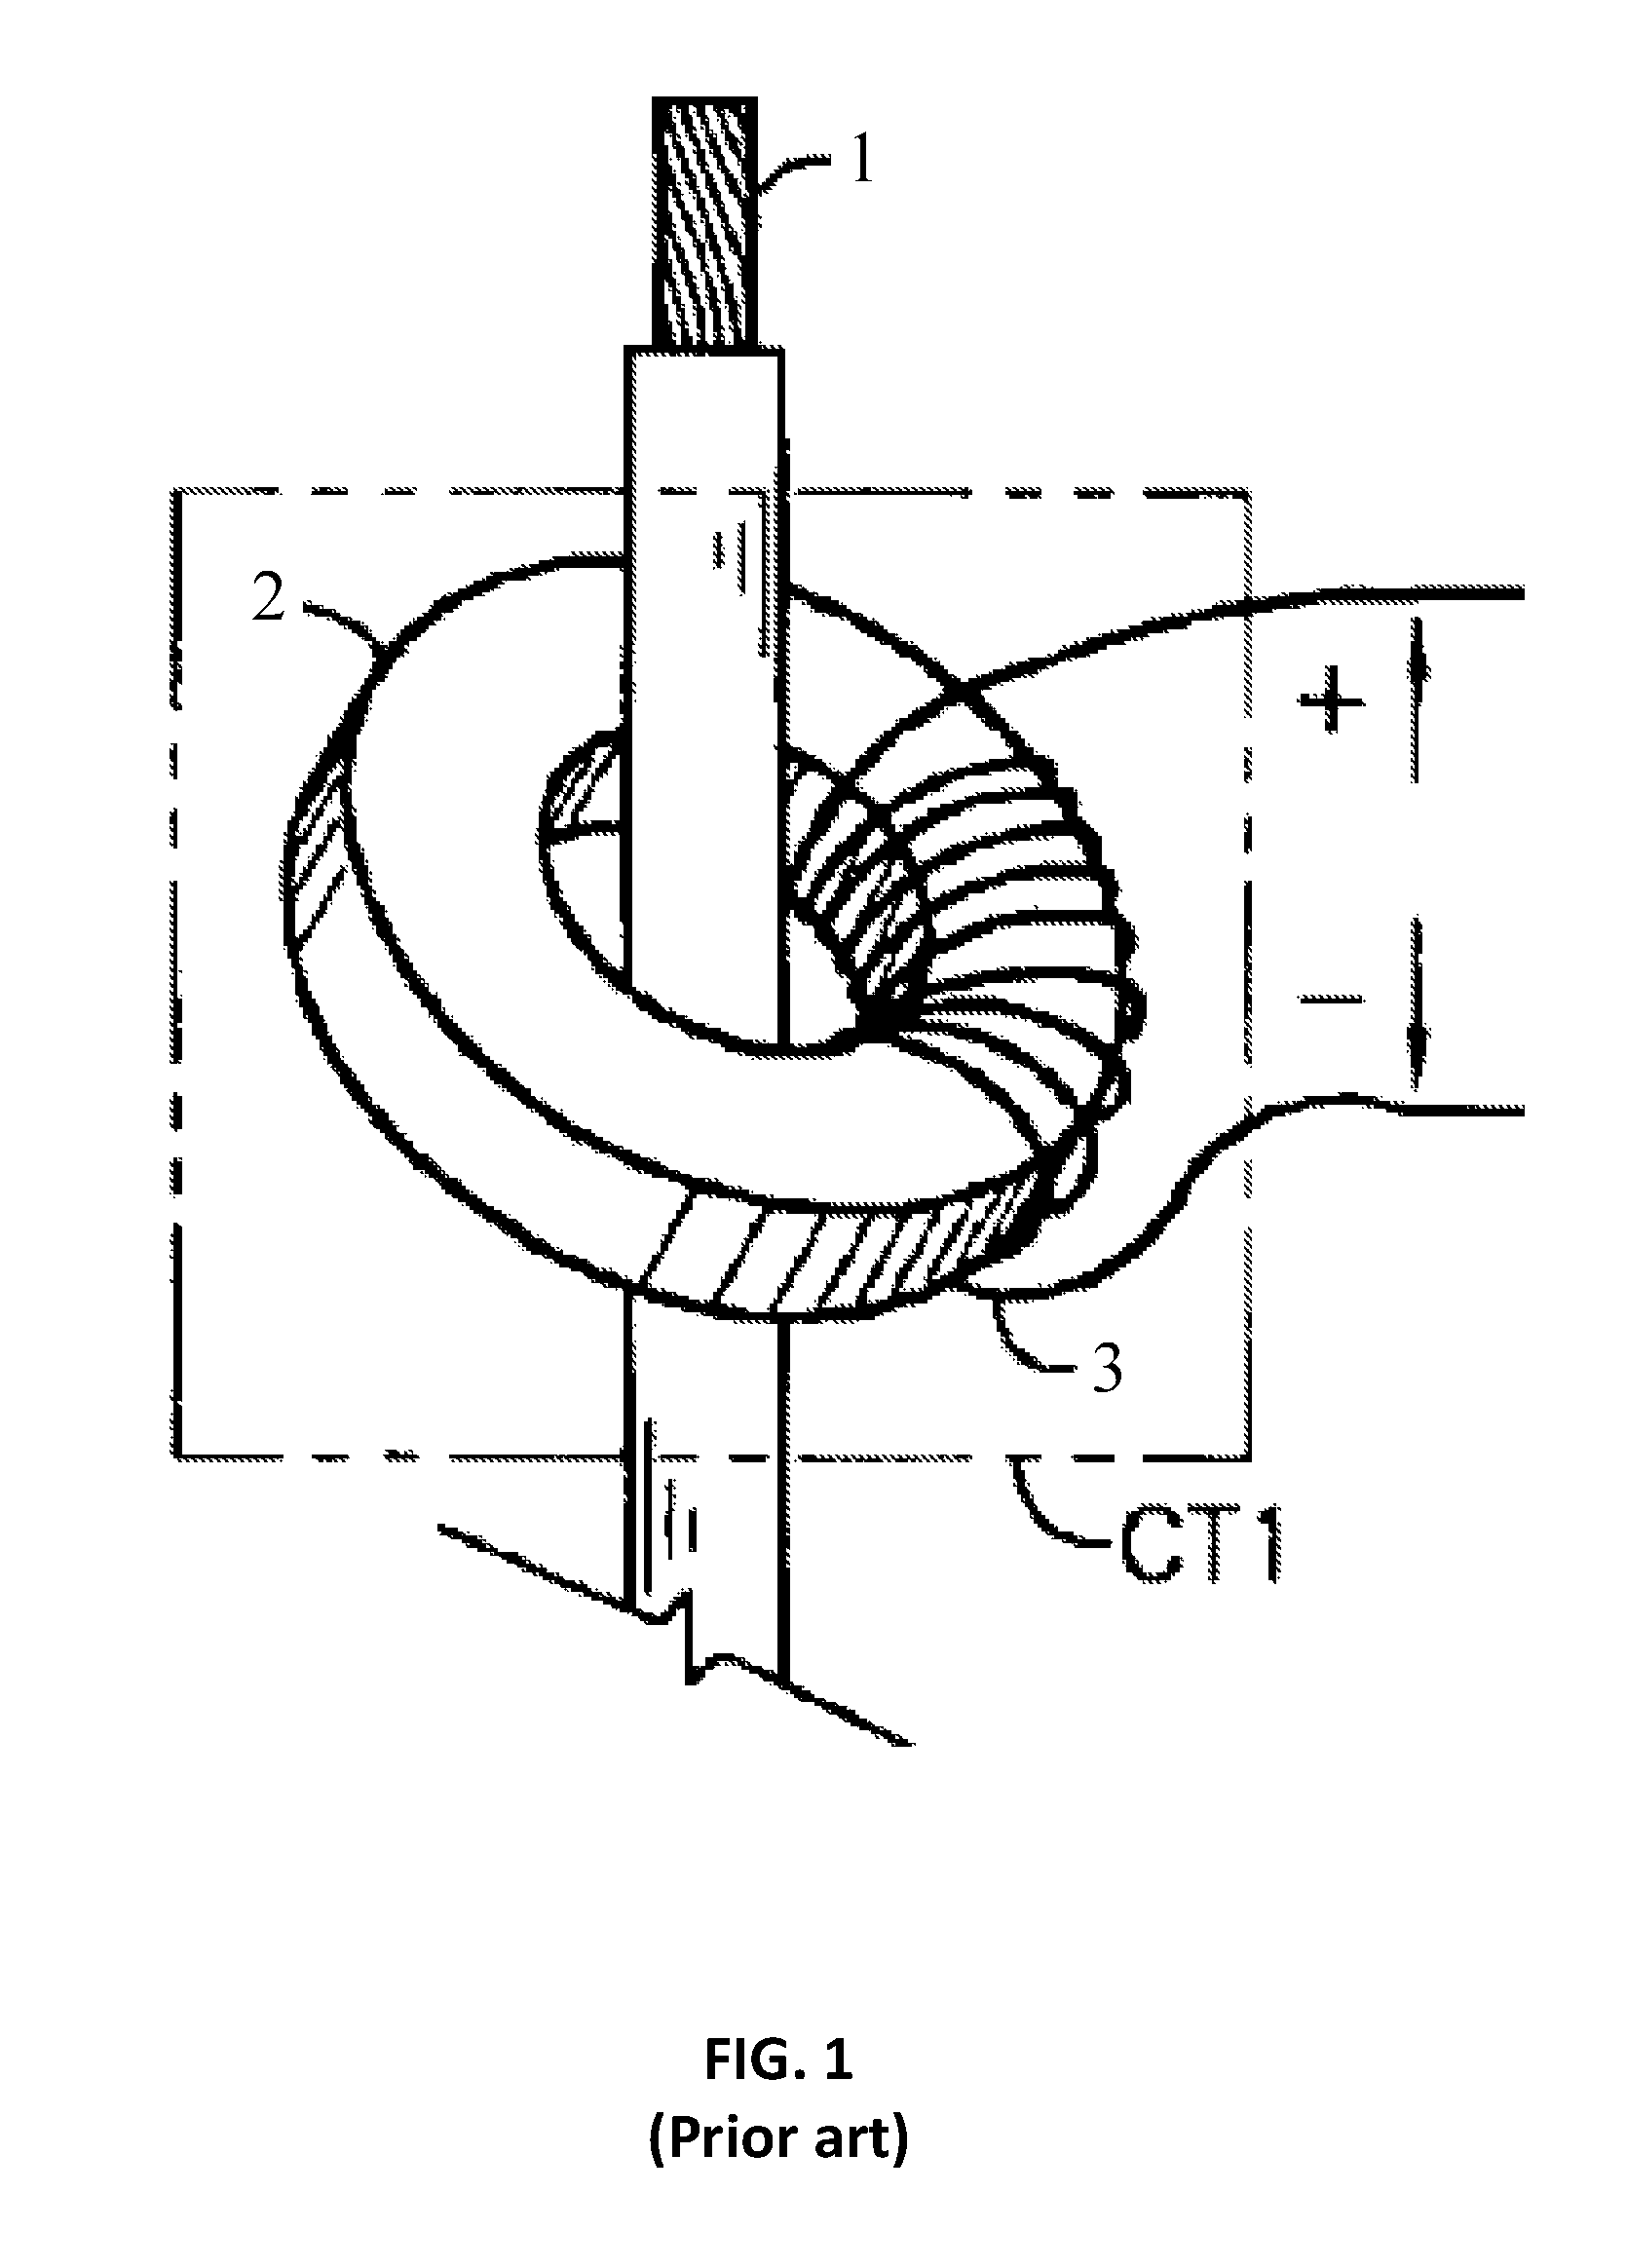 Resistor Drawing At Free For Personal Use Speed Control Circuit An Electric Power Tool Google Patents 1669x2328 Patent Us8847573 Acdc Current Transformer